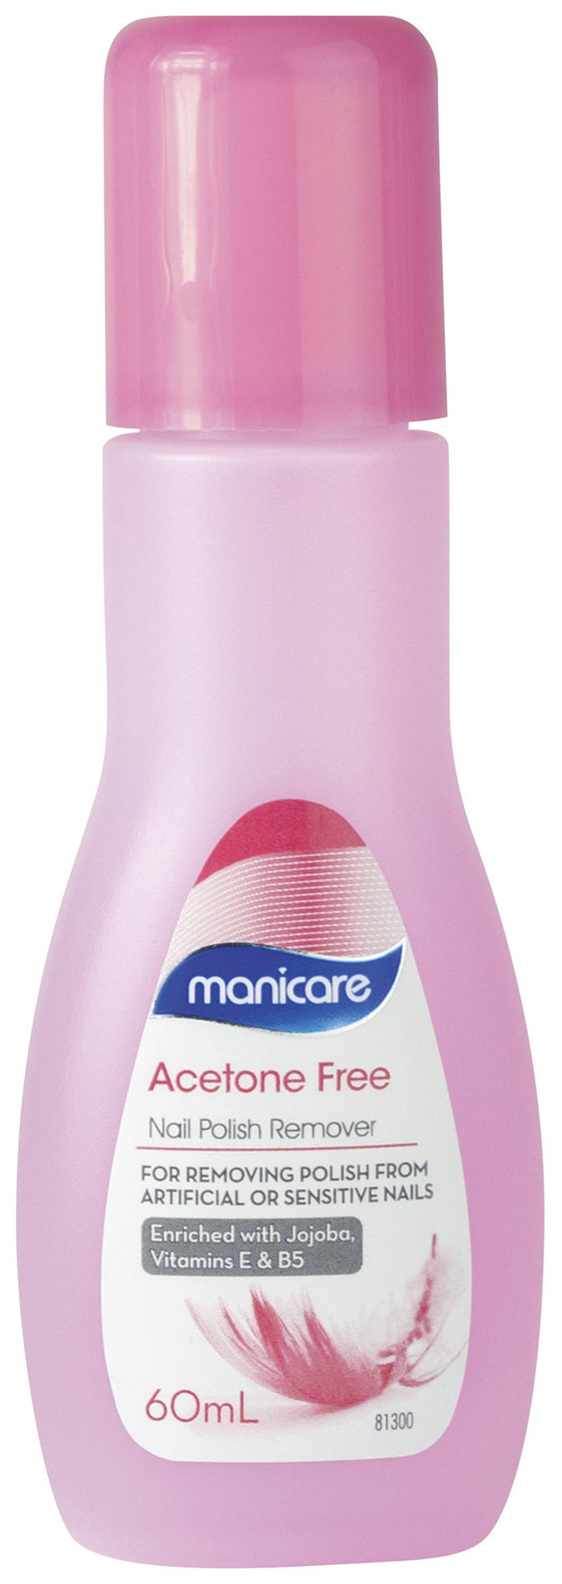 Manicare Extra Gentle Nail Polish Remover 60mL